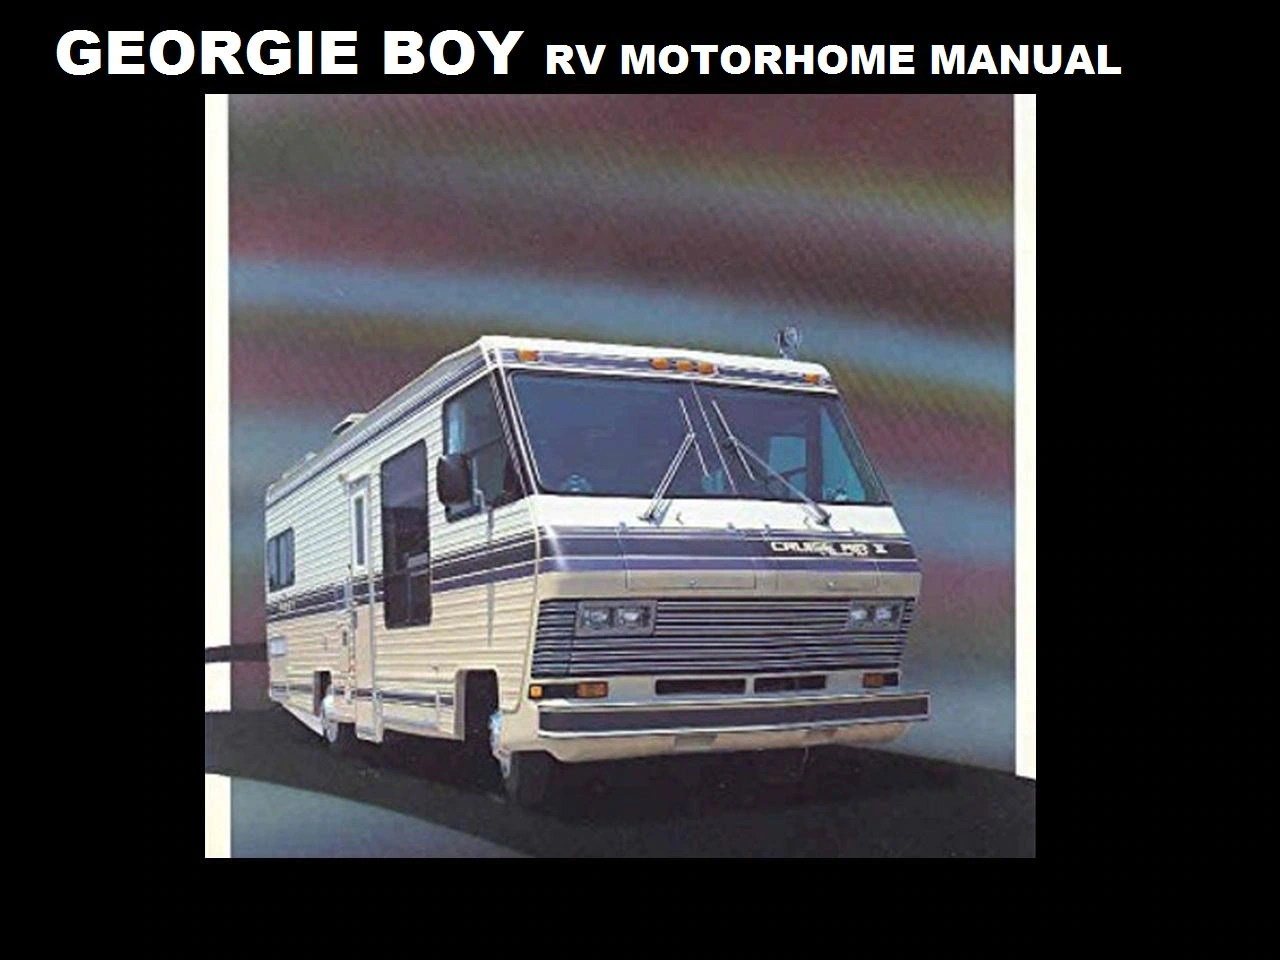 hight resolution of georgie boy 1980 1990 motorhome manuals 410 pgs with rv etsy